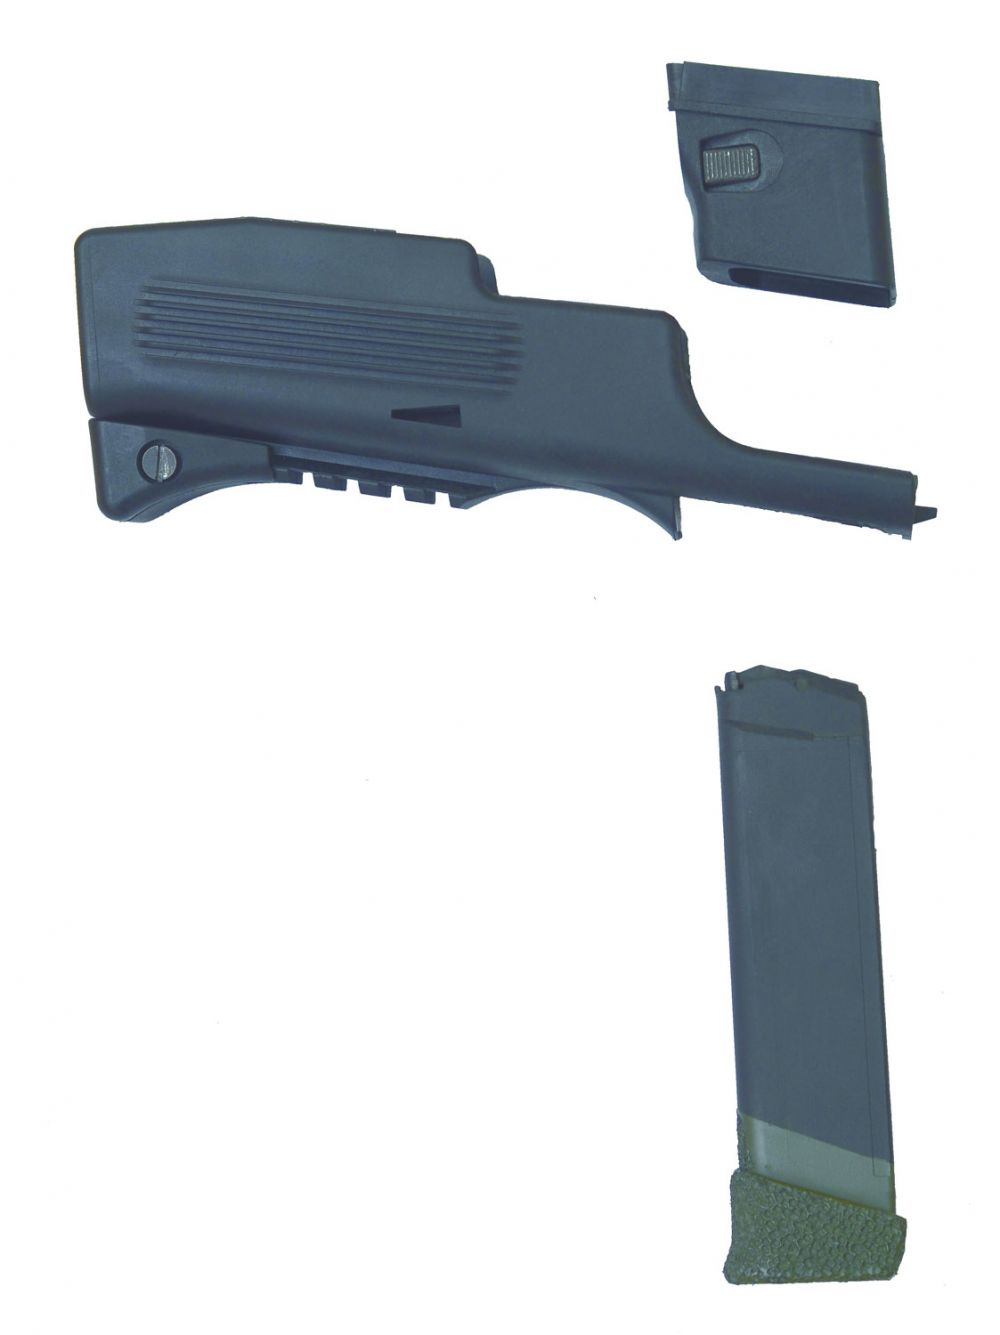 Chiappa Firearms 970446 for Glock Multiple Mag Adaptor Black Finish